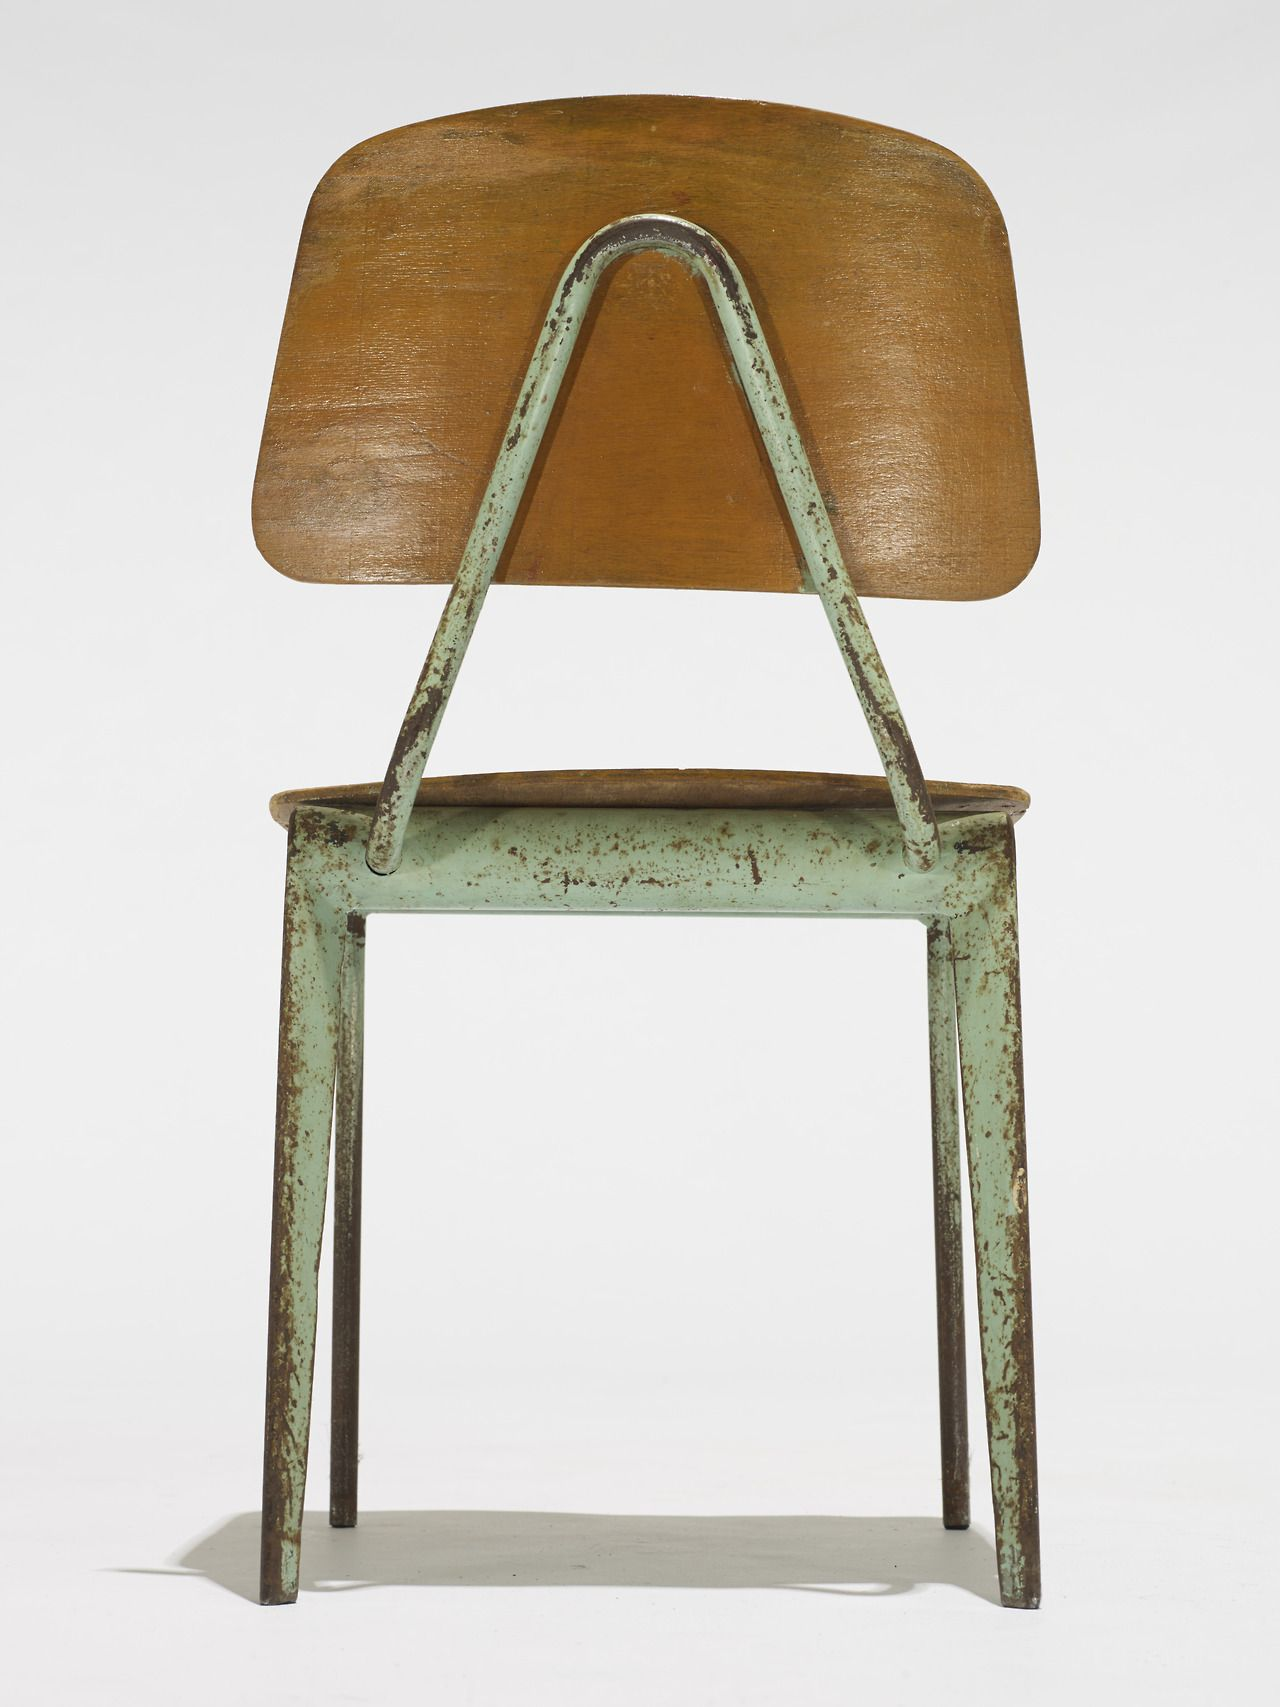 Jean Prouvé Enameled Steel And Plywood Child S Chair C1950 Modern Retro Furniture Prouve Furniture Modern Classic Furniture